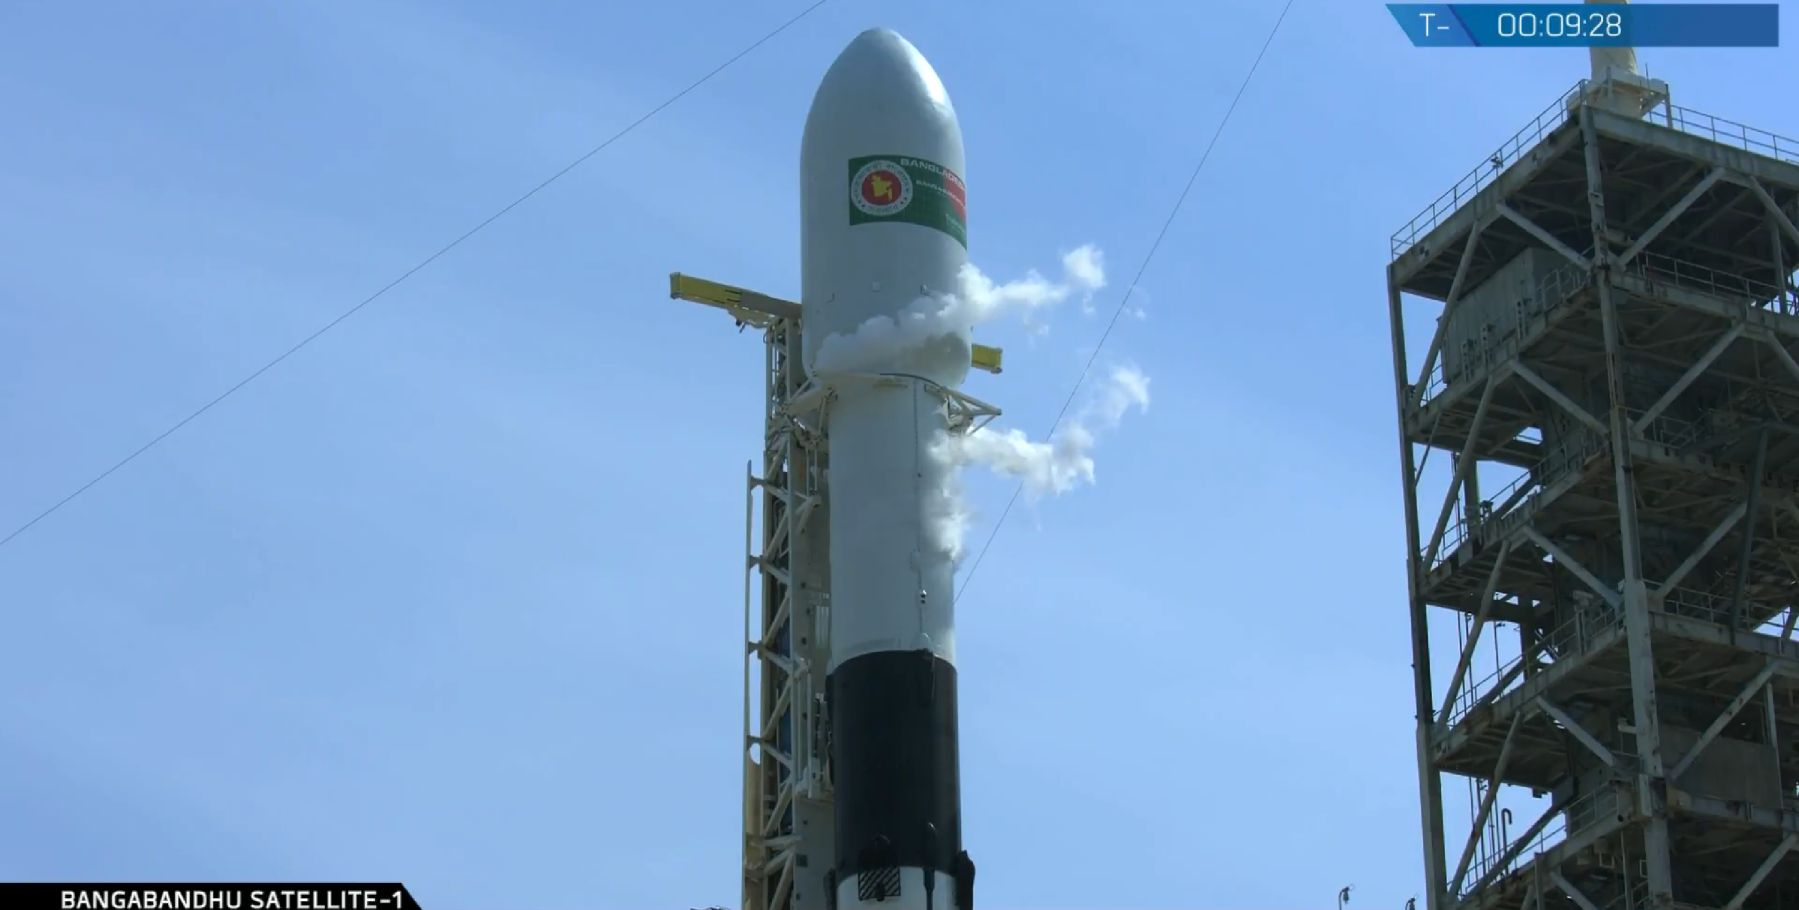 F9 1046 S2 venting (SpaceX)